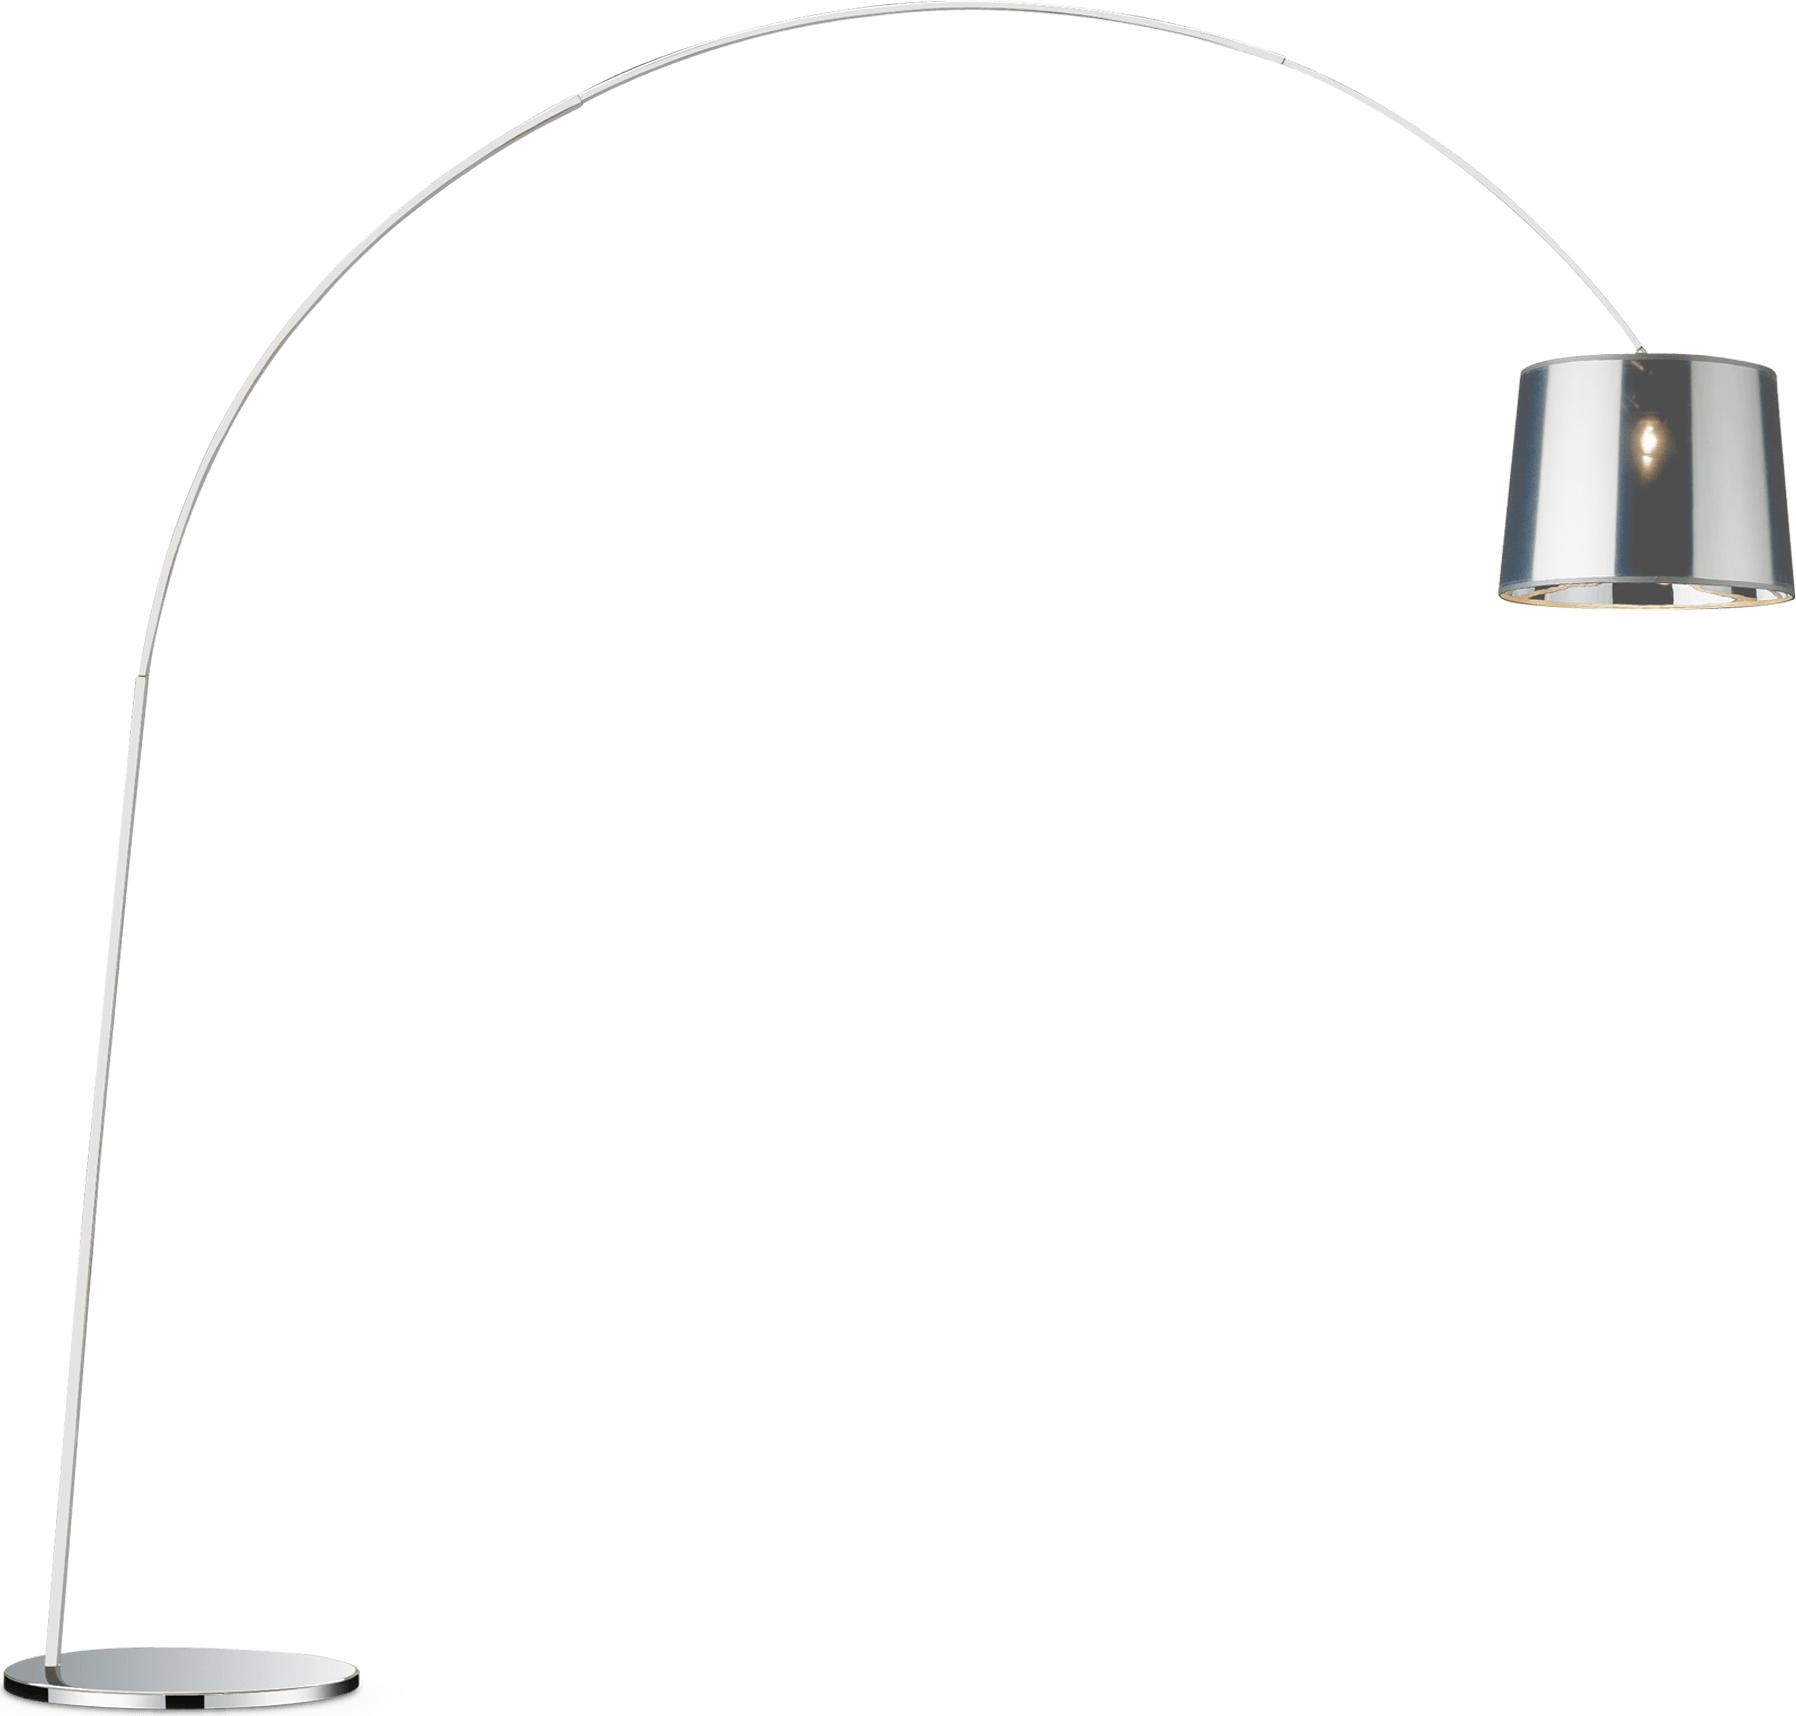 Ideal lux LED Dorsale Cromo Lampe stehende 5W 5126